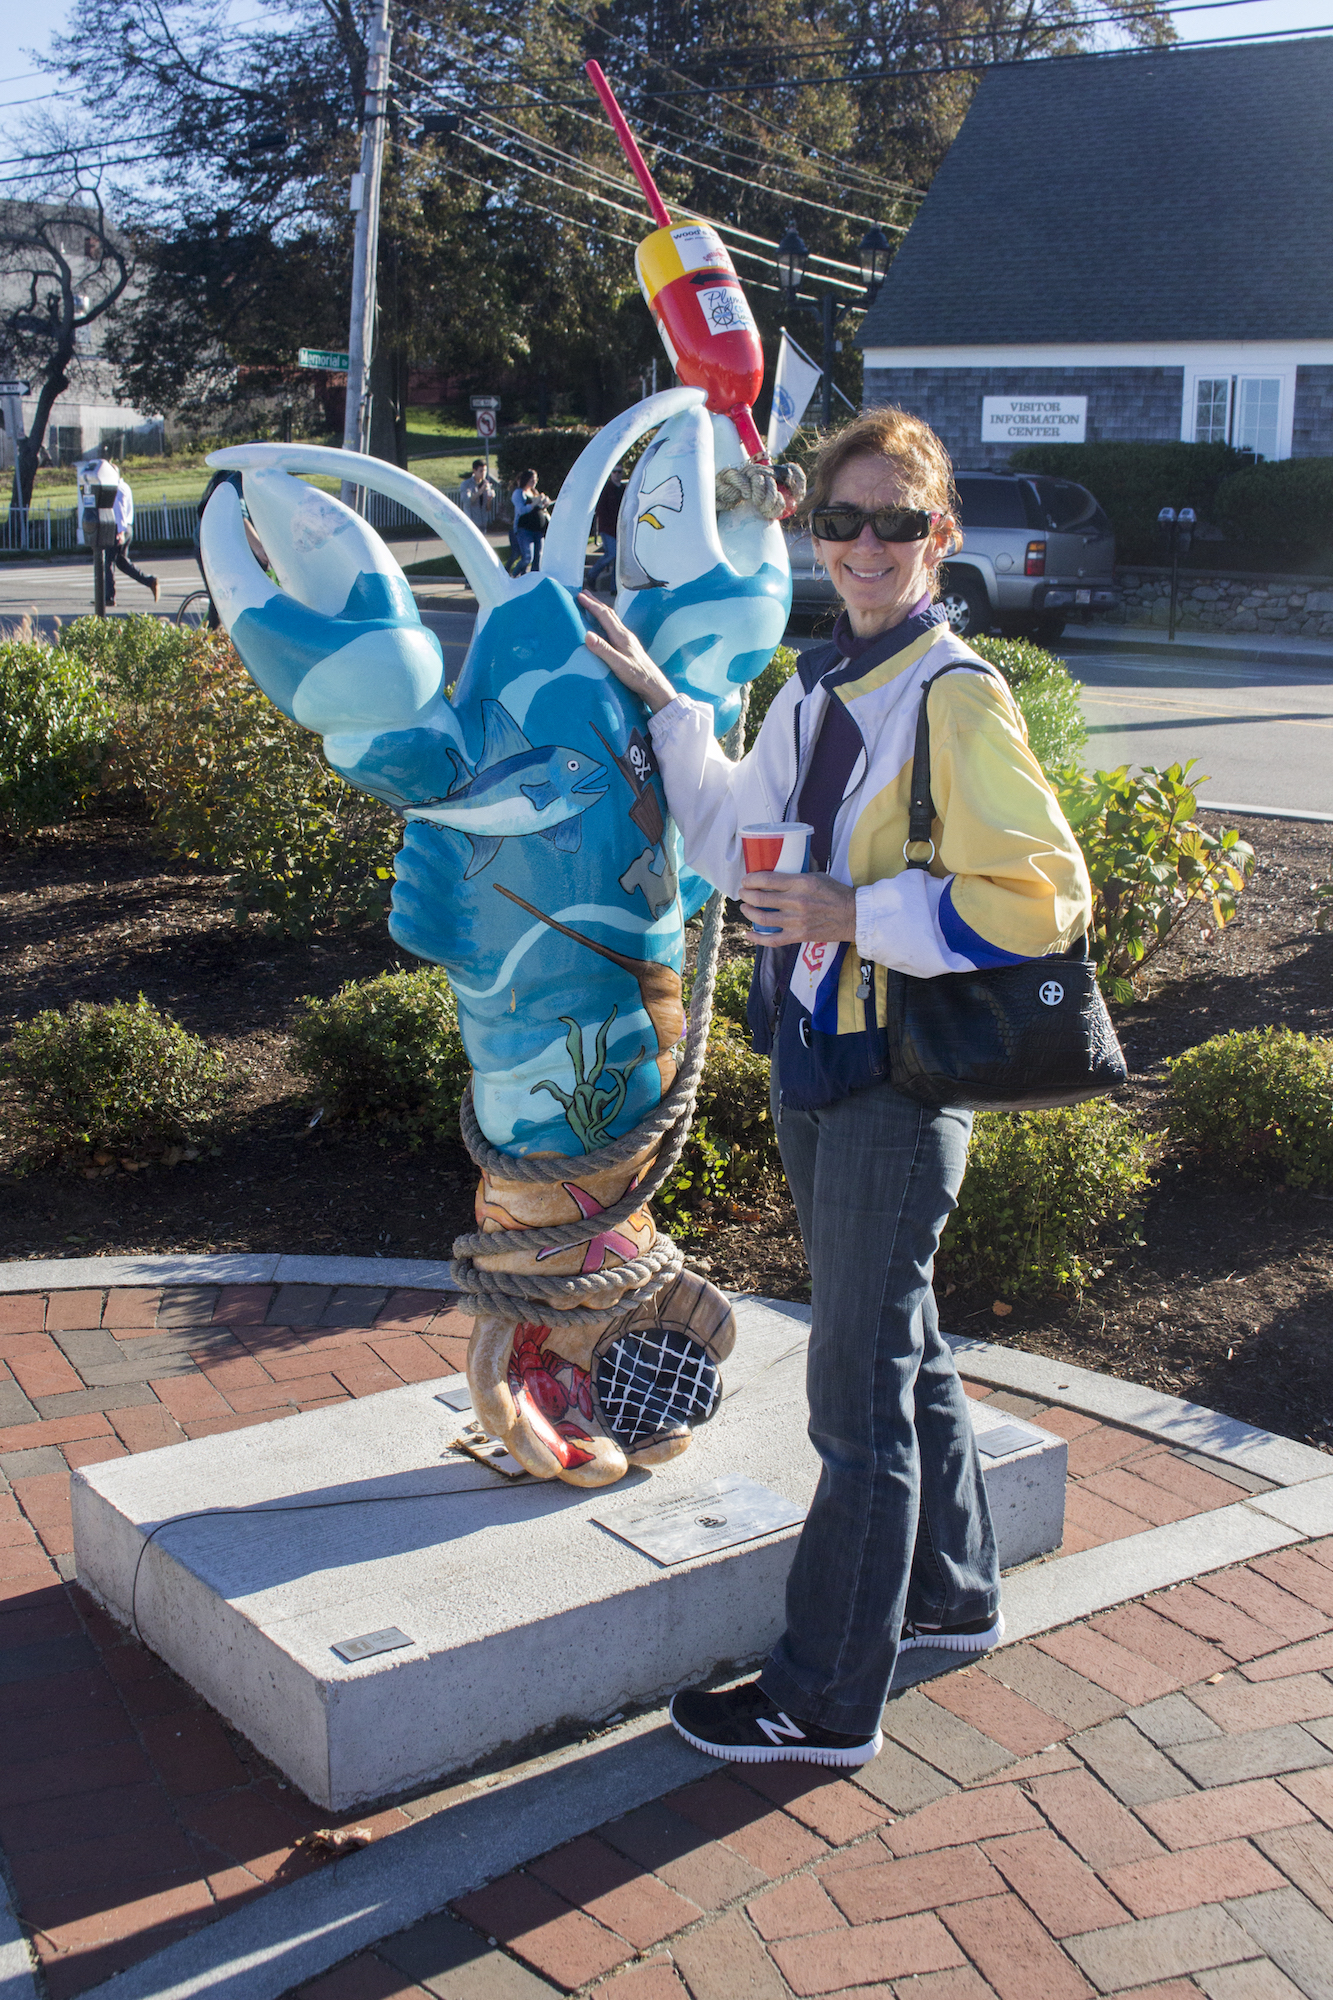 Funny mom-and-lobster photo in Plymouth, MA, USA photographed by daughter Geena Matuson (@geenamatuson) #thegirlmirage, 2017.